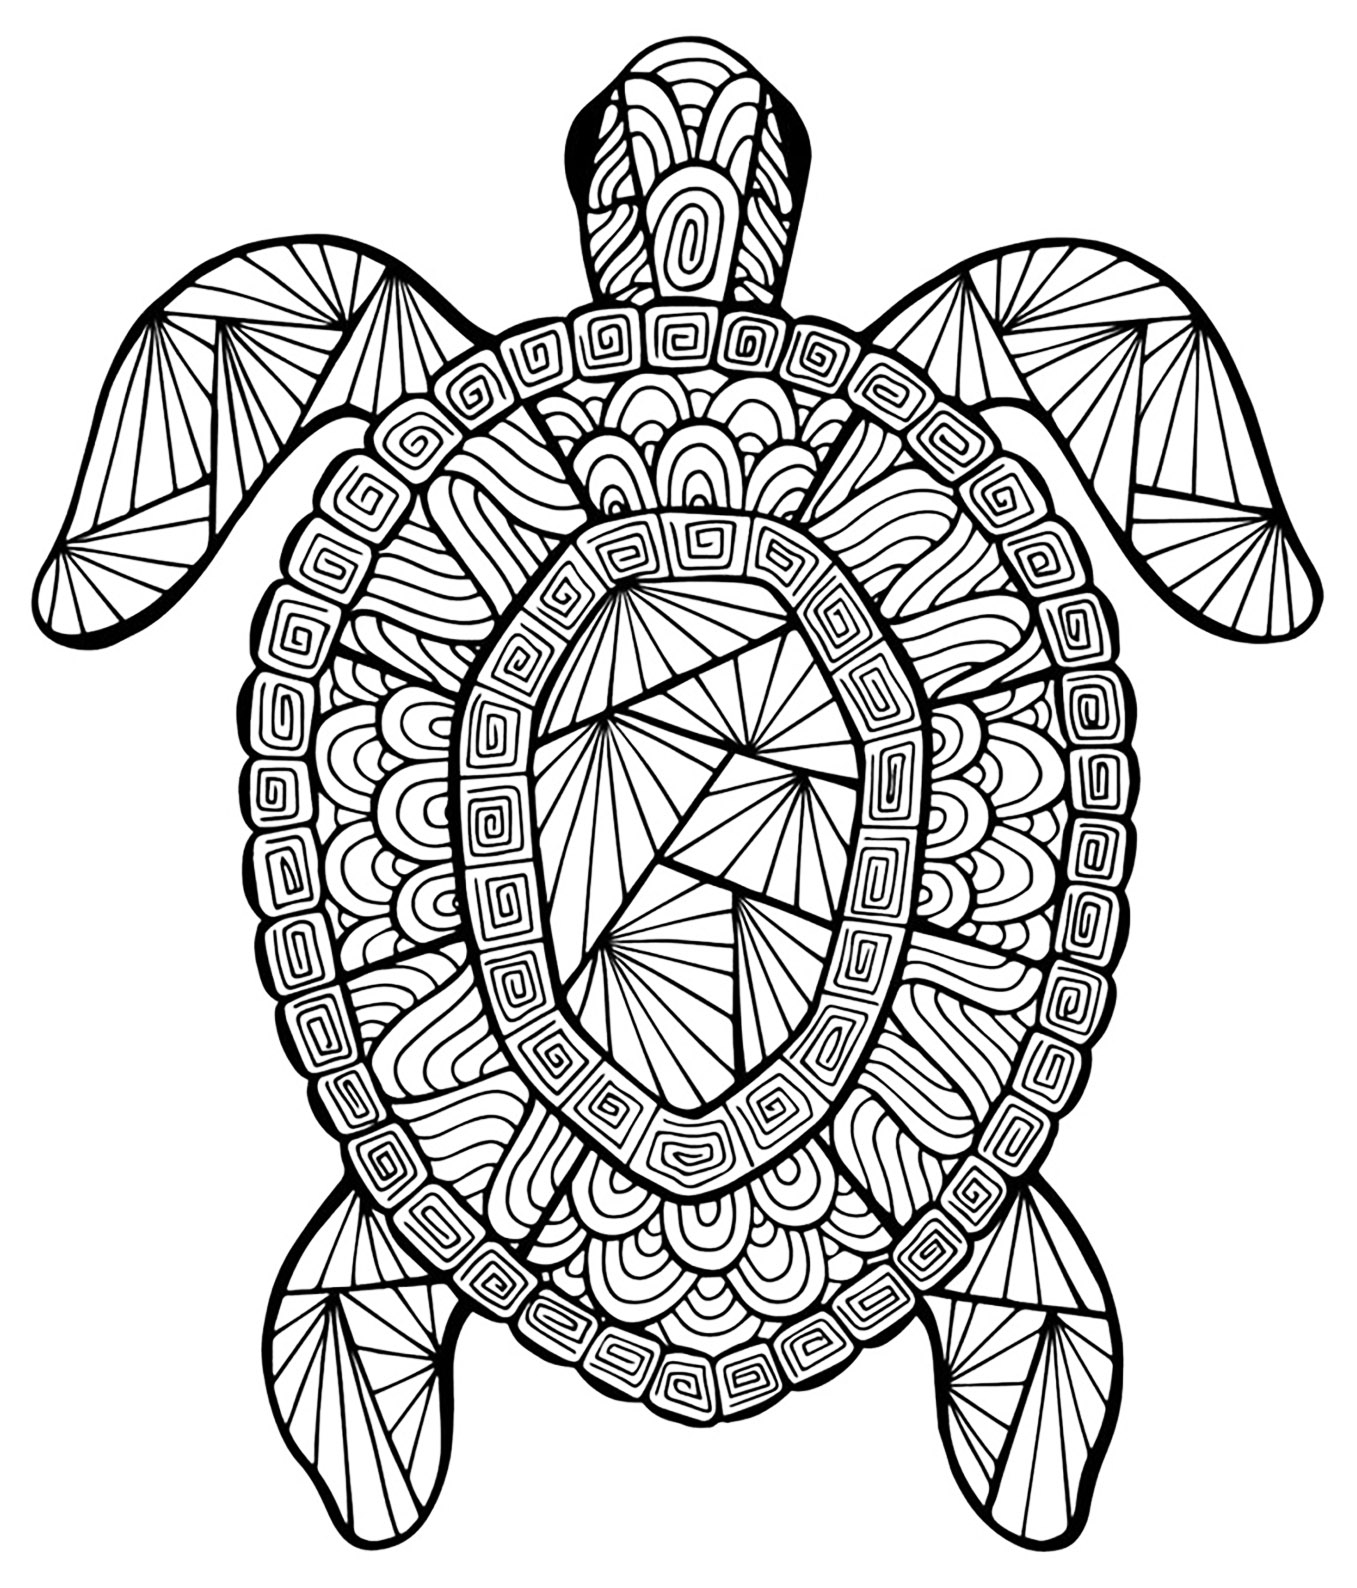 tortoise coloring page turtles coloring pages download and print turtles coloring tortoise page